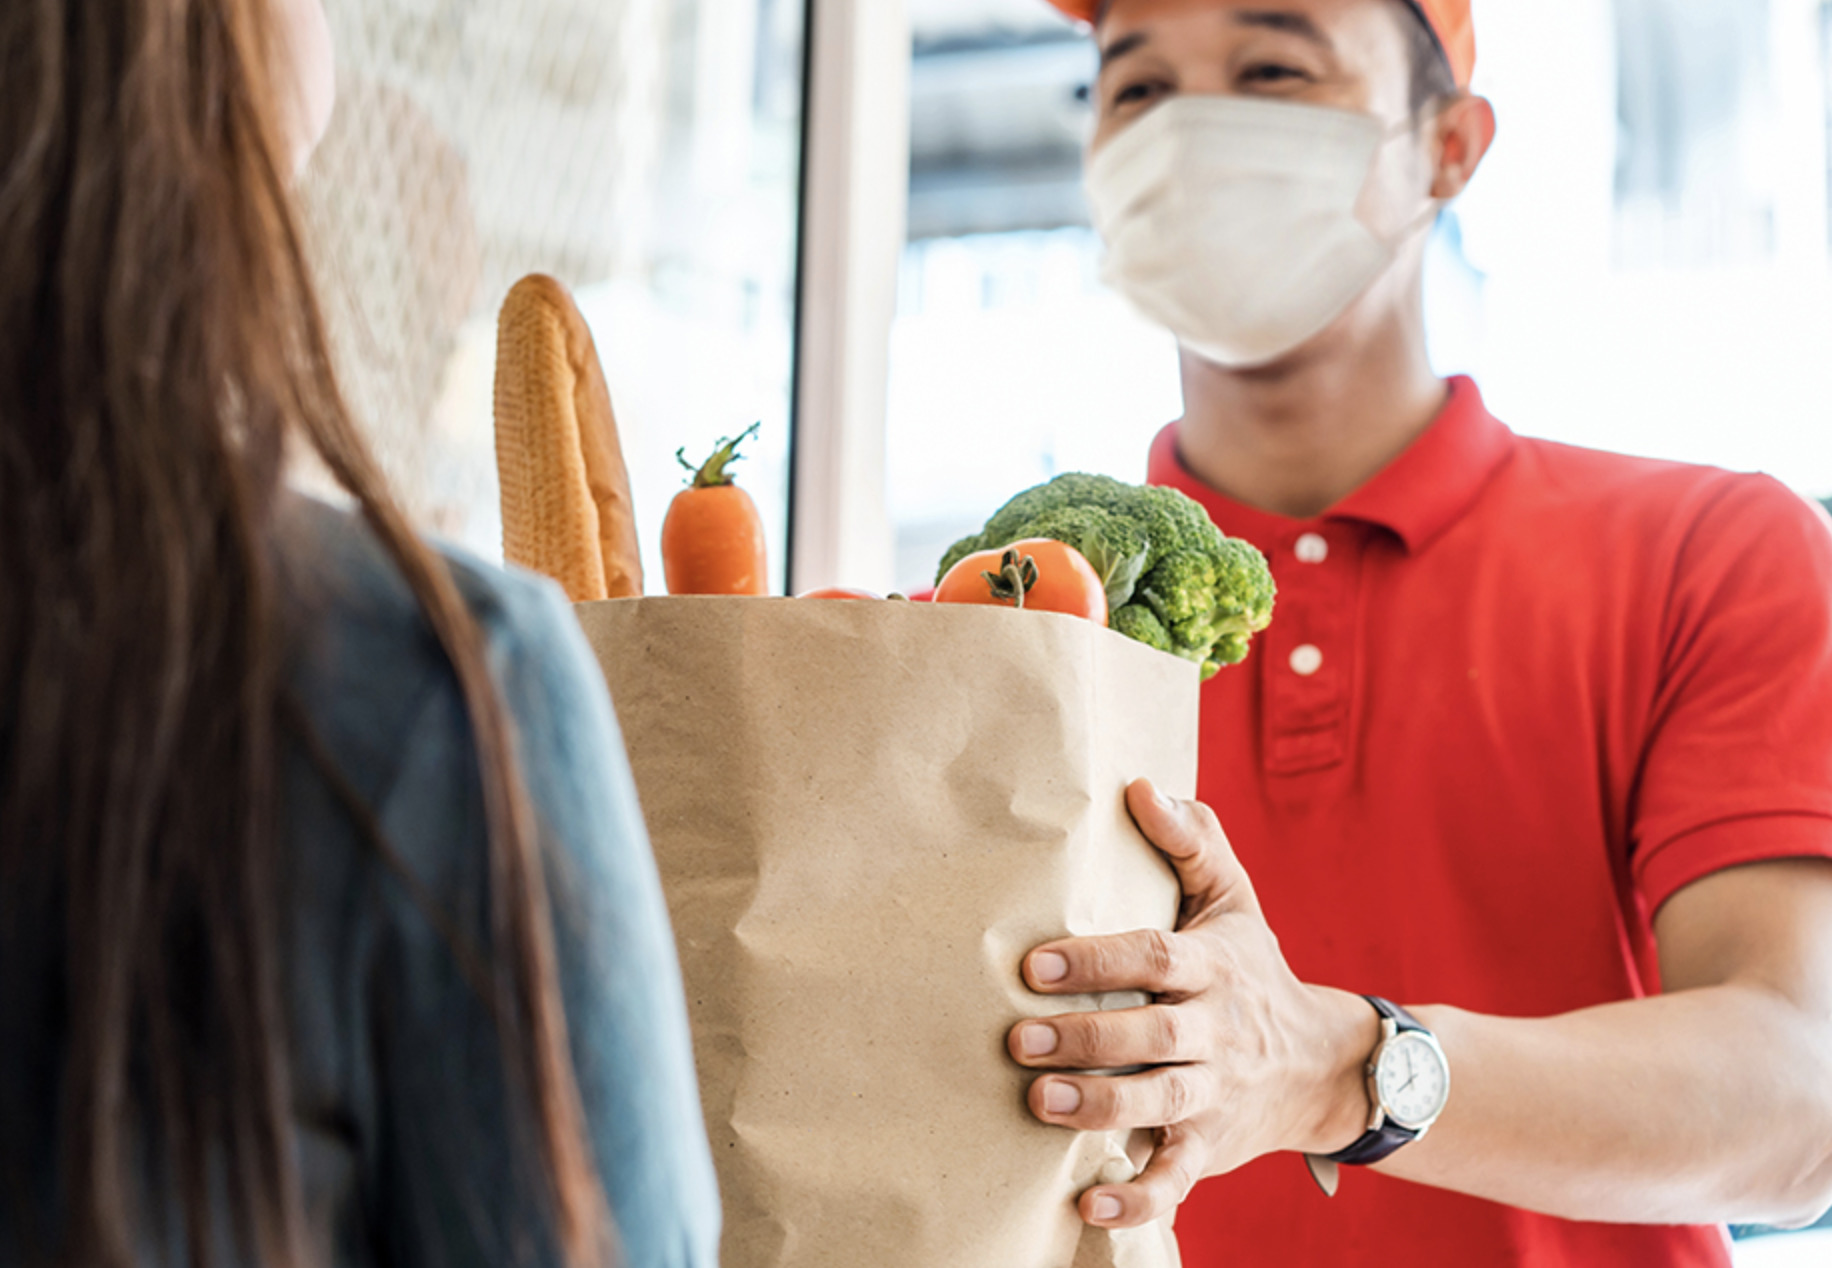 How to Get the BEST Service as a Delivery Customer